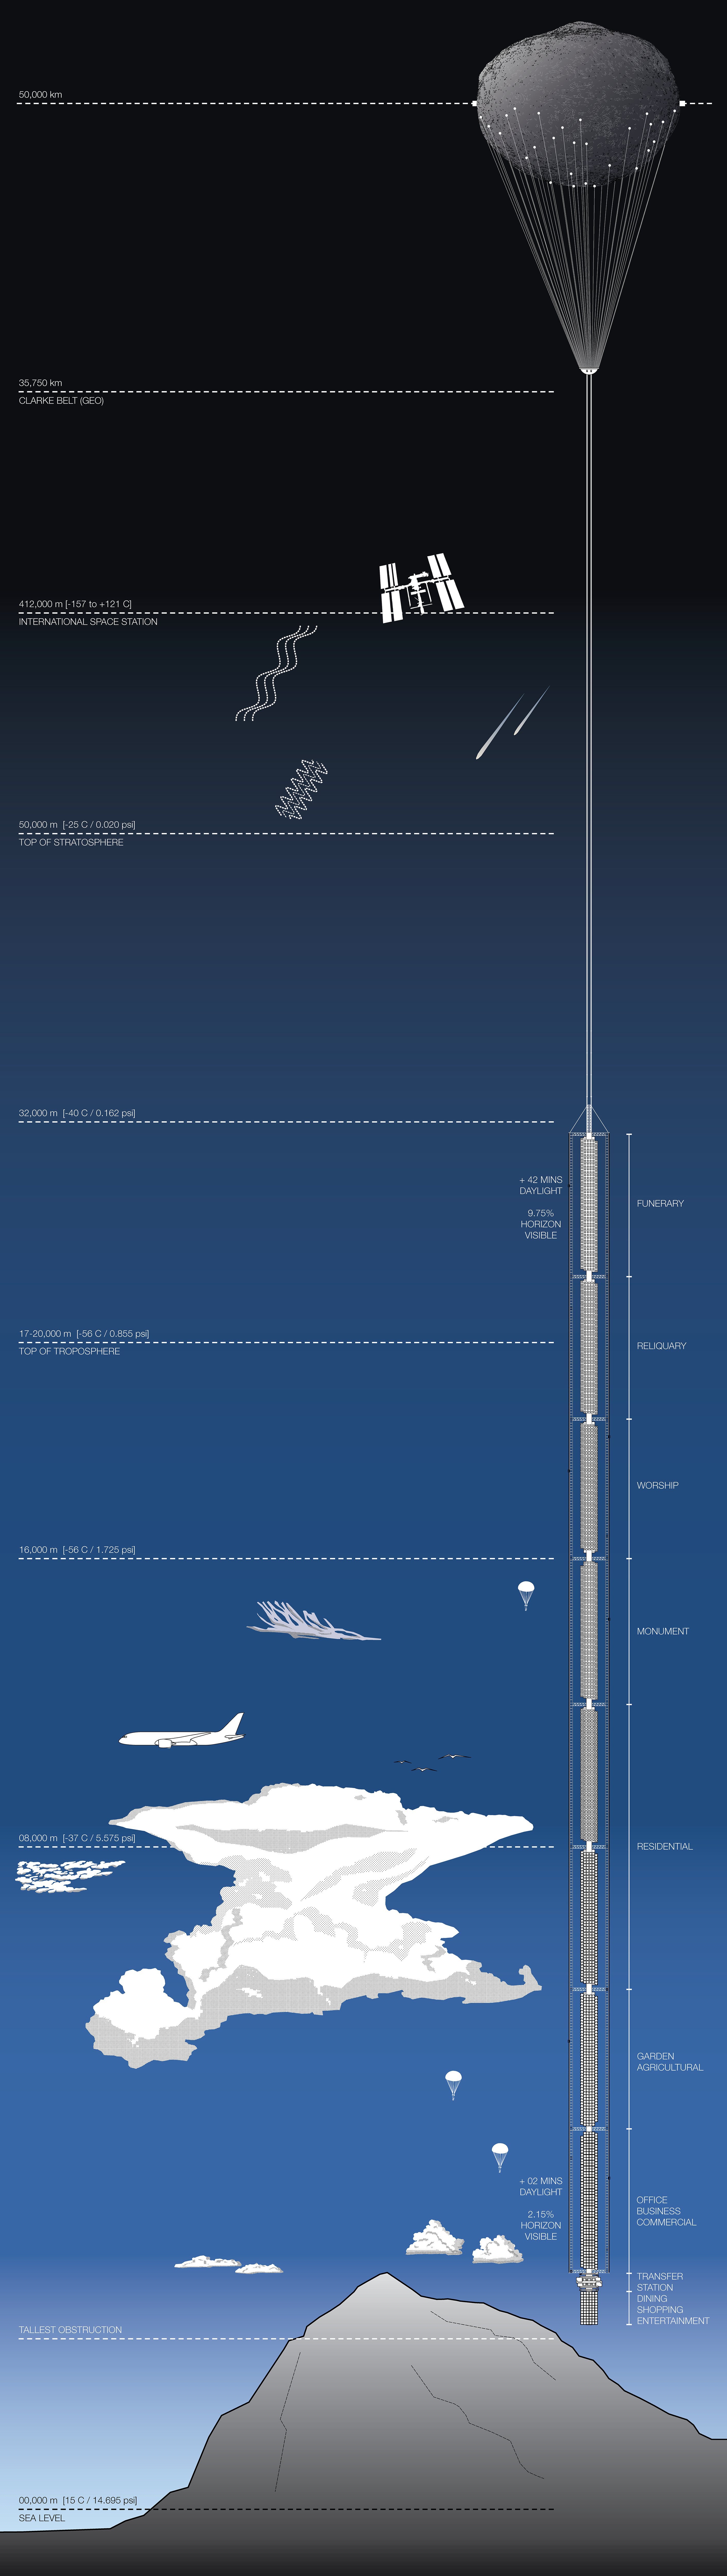 Madison Square Garden: World's Tallest Building Proposal Hangs A Megatall On An